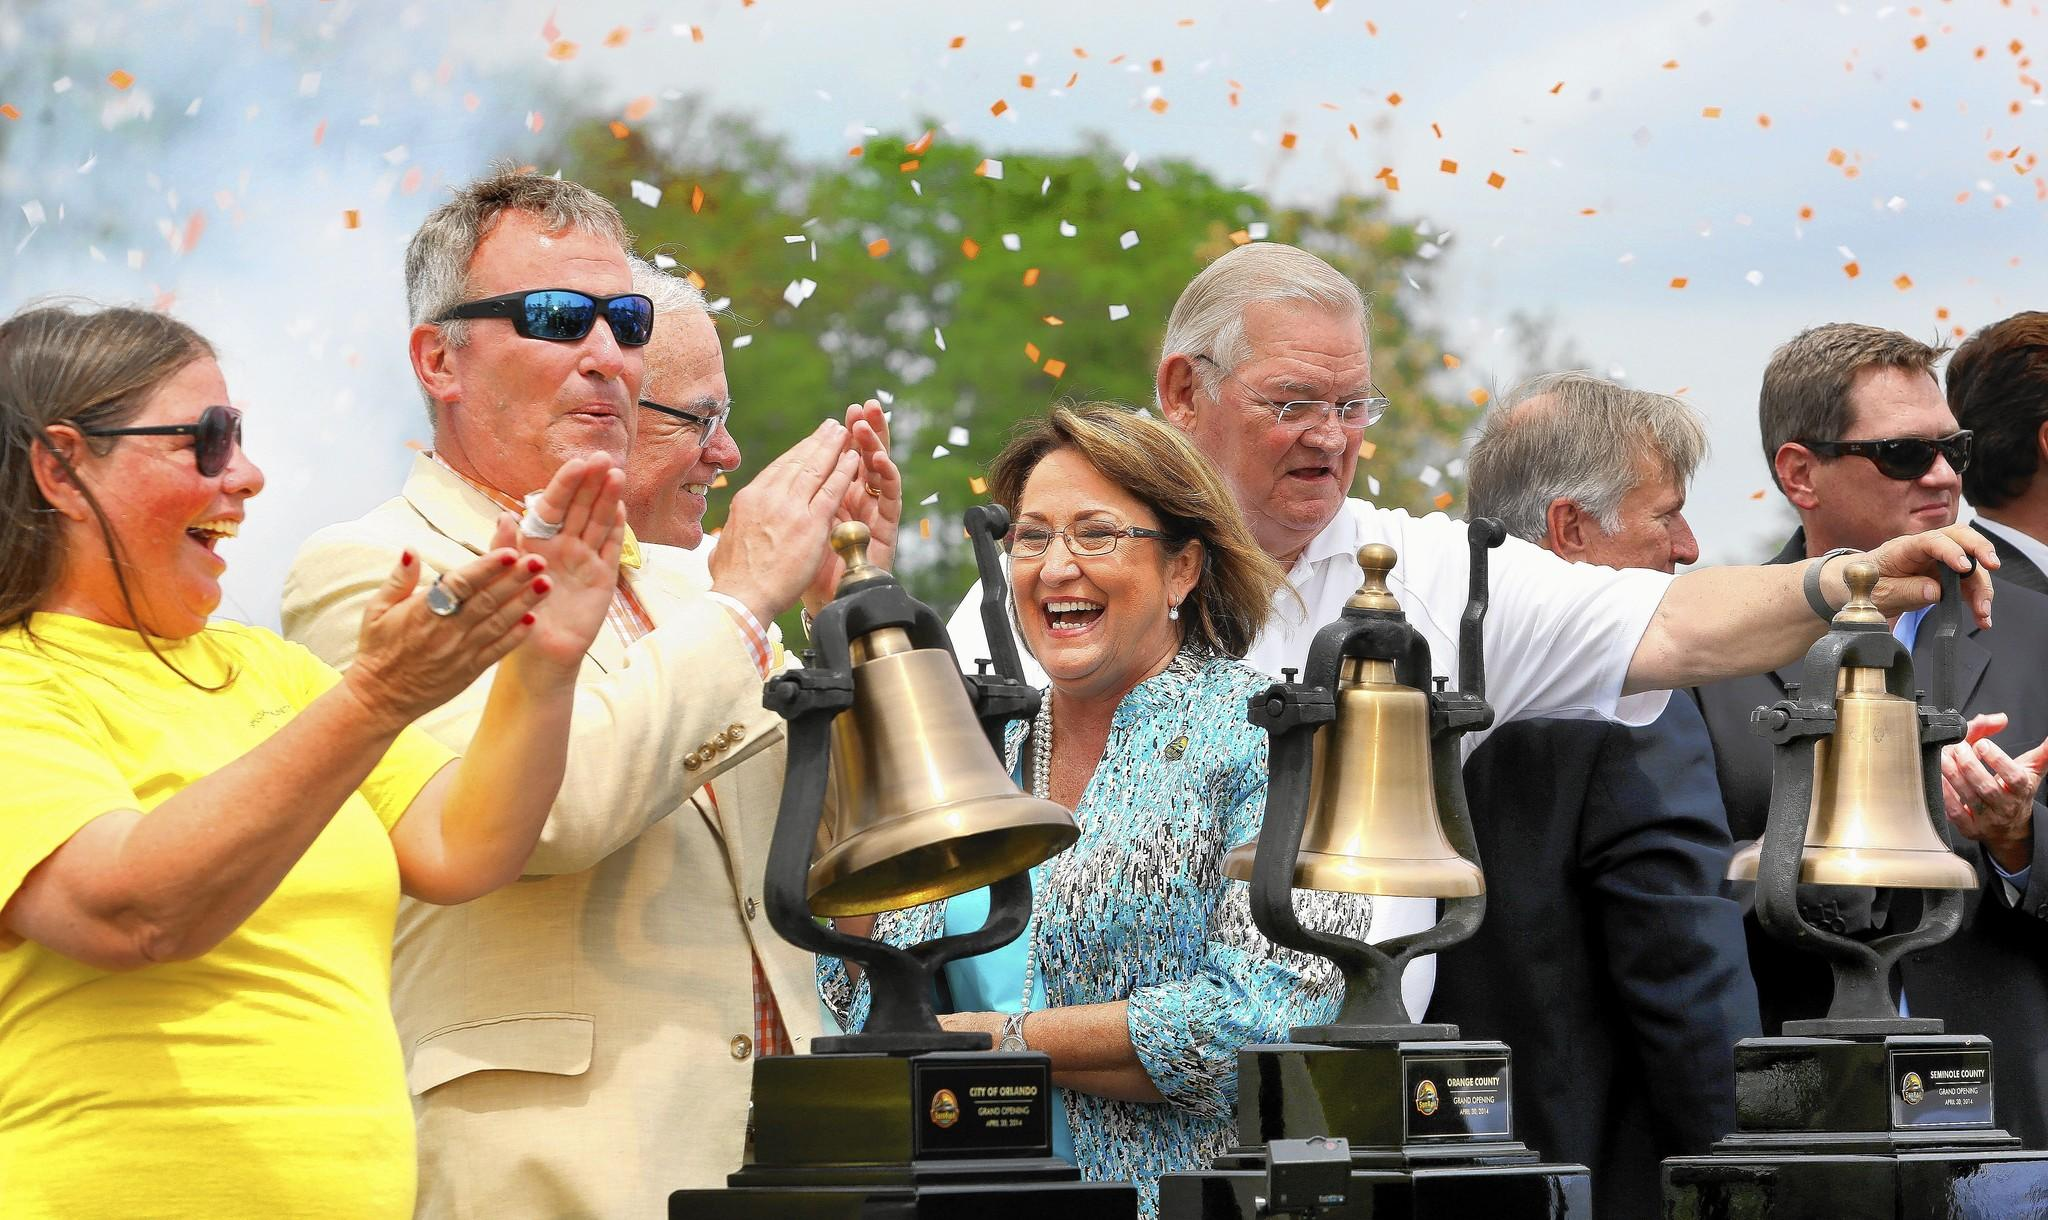 The long-awaited moment finally arrives with bell-ringing and confetti during the official SunRail Grand Opening Ceremony at the Sand Lake Road Station, in Orlando, Wednesday, April 30, 2014. From left, JoAnne Counelis, a guest of Orlando mayor Buddy Dyer, former Orange mayor Rich Crotty, current Orange mayor Teresa Jacobs, Orange commissioner Fred Brummer, and other elected officials.